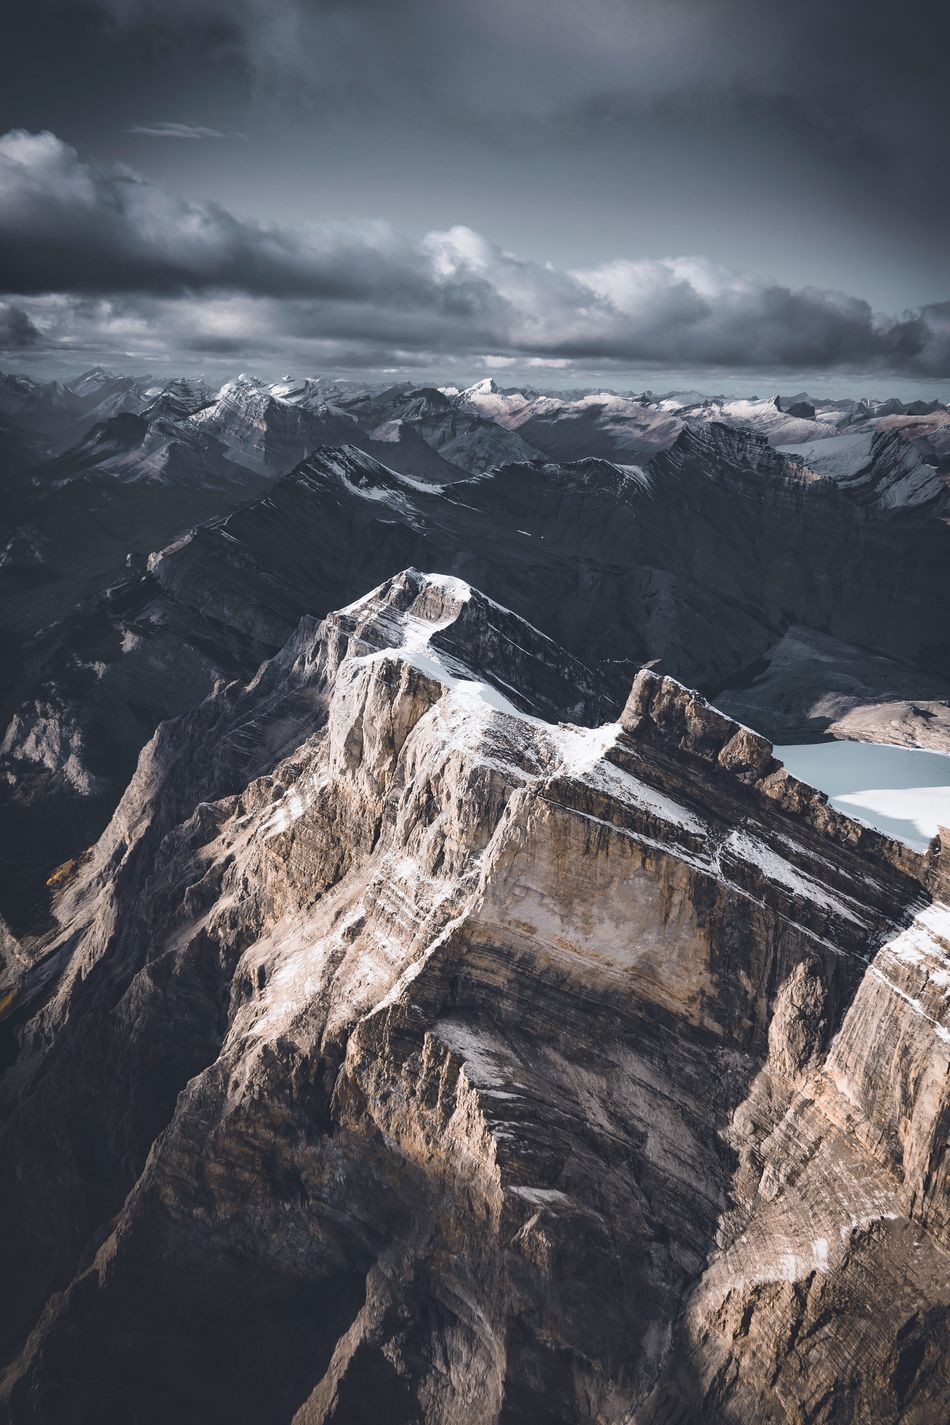 Never ending Rockies. Canada Mountain Nature Sky Mountain Range Outdoors Landscape Cloud - Sky No People Beauty In Nature Day